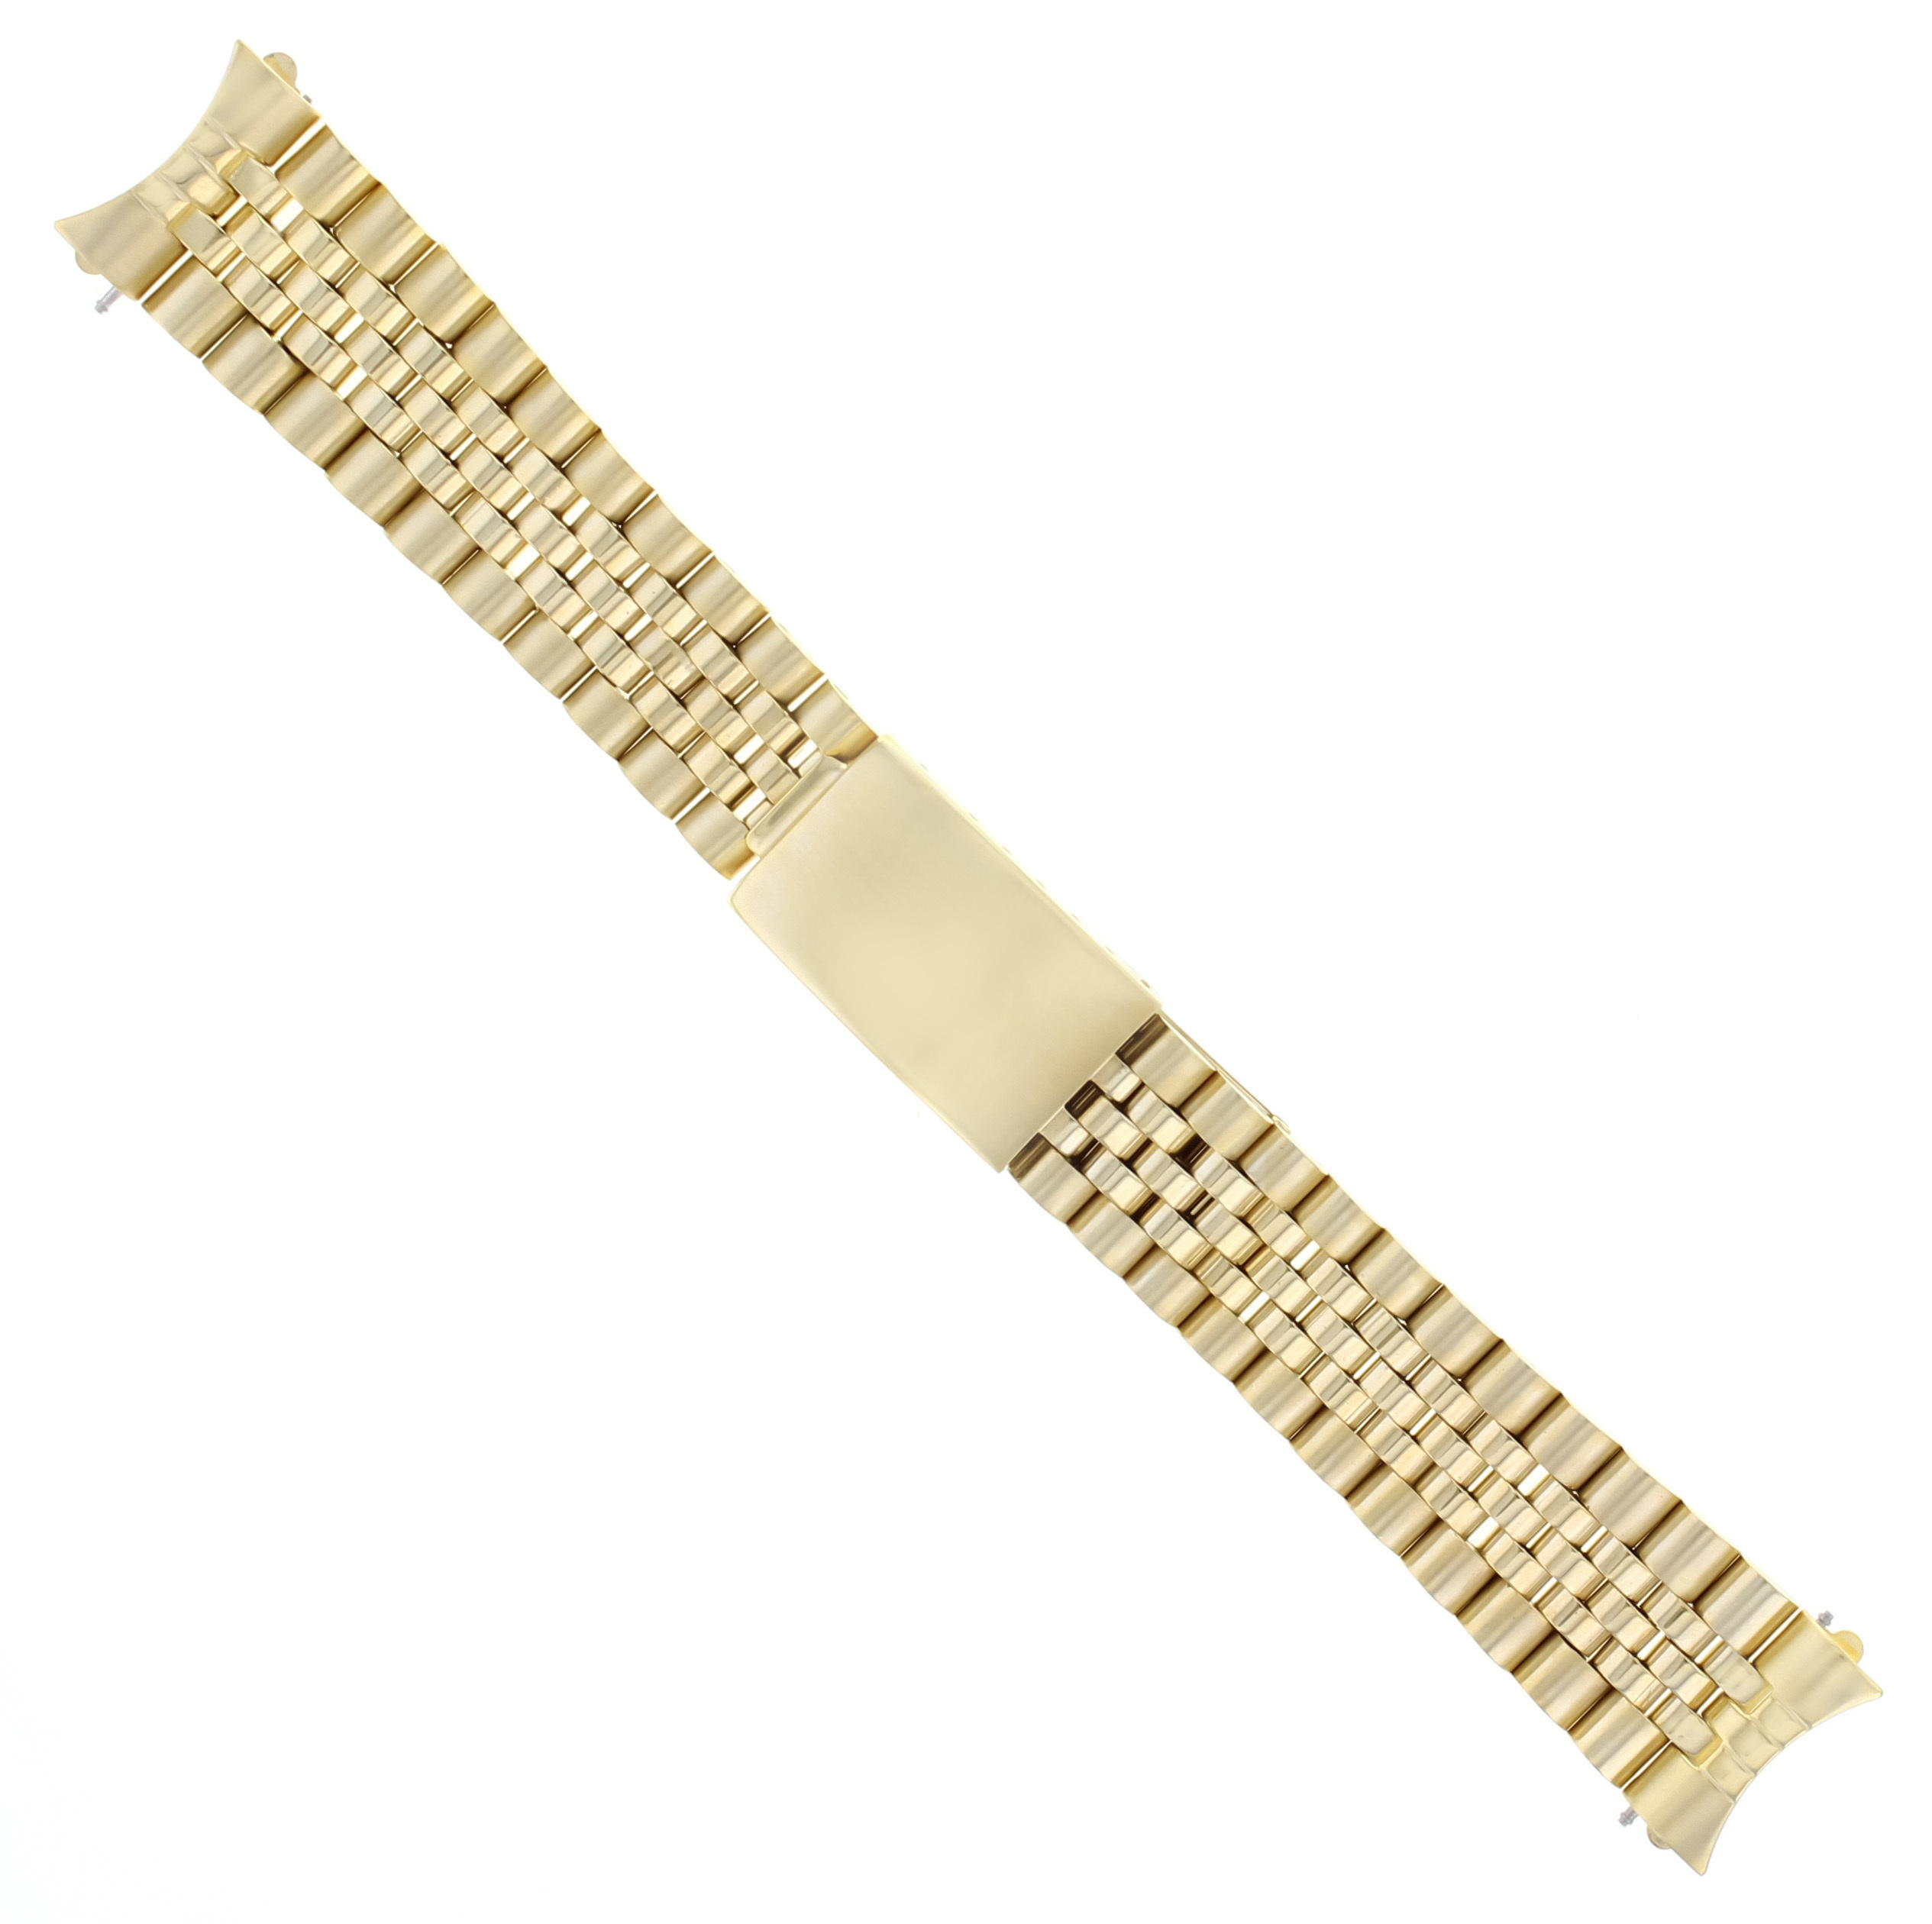 JUBILEE WATCH BAND MENS FOR 36MM ROLEX DATEJUST 16014 16018 WATCH GOLD 20MM